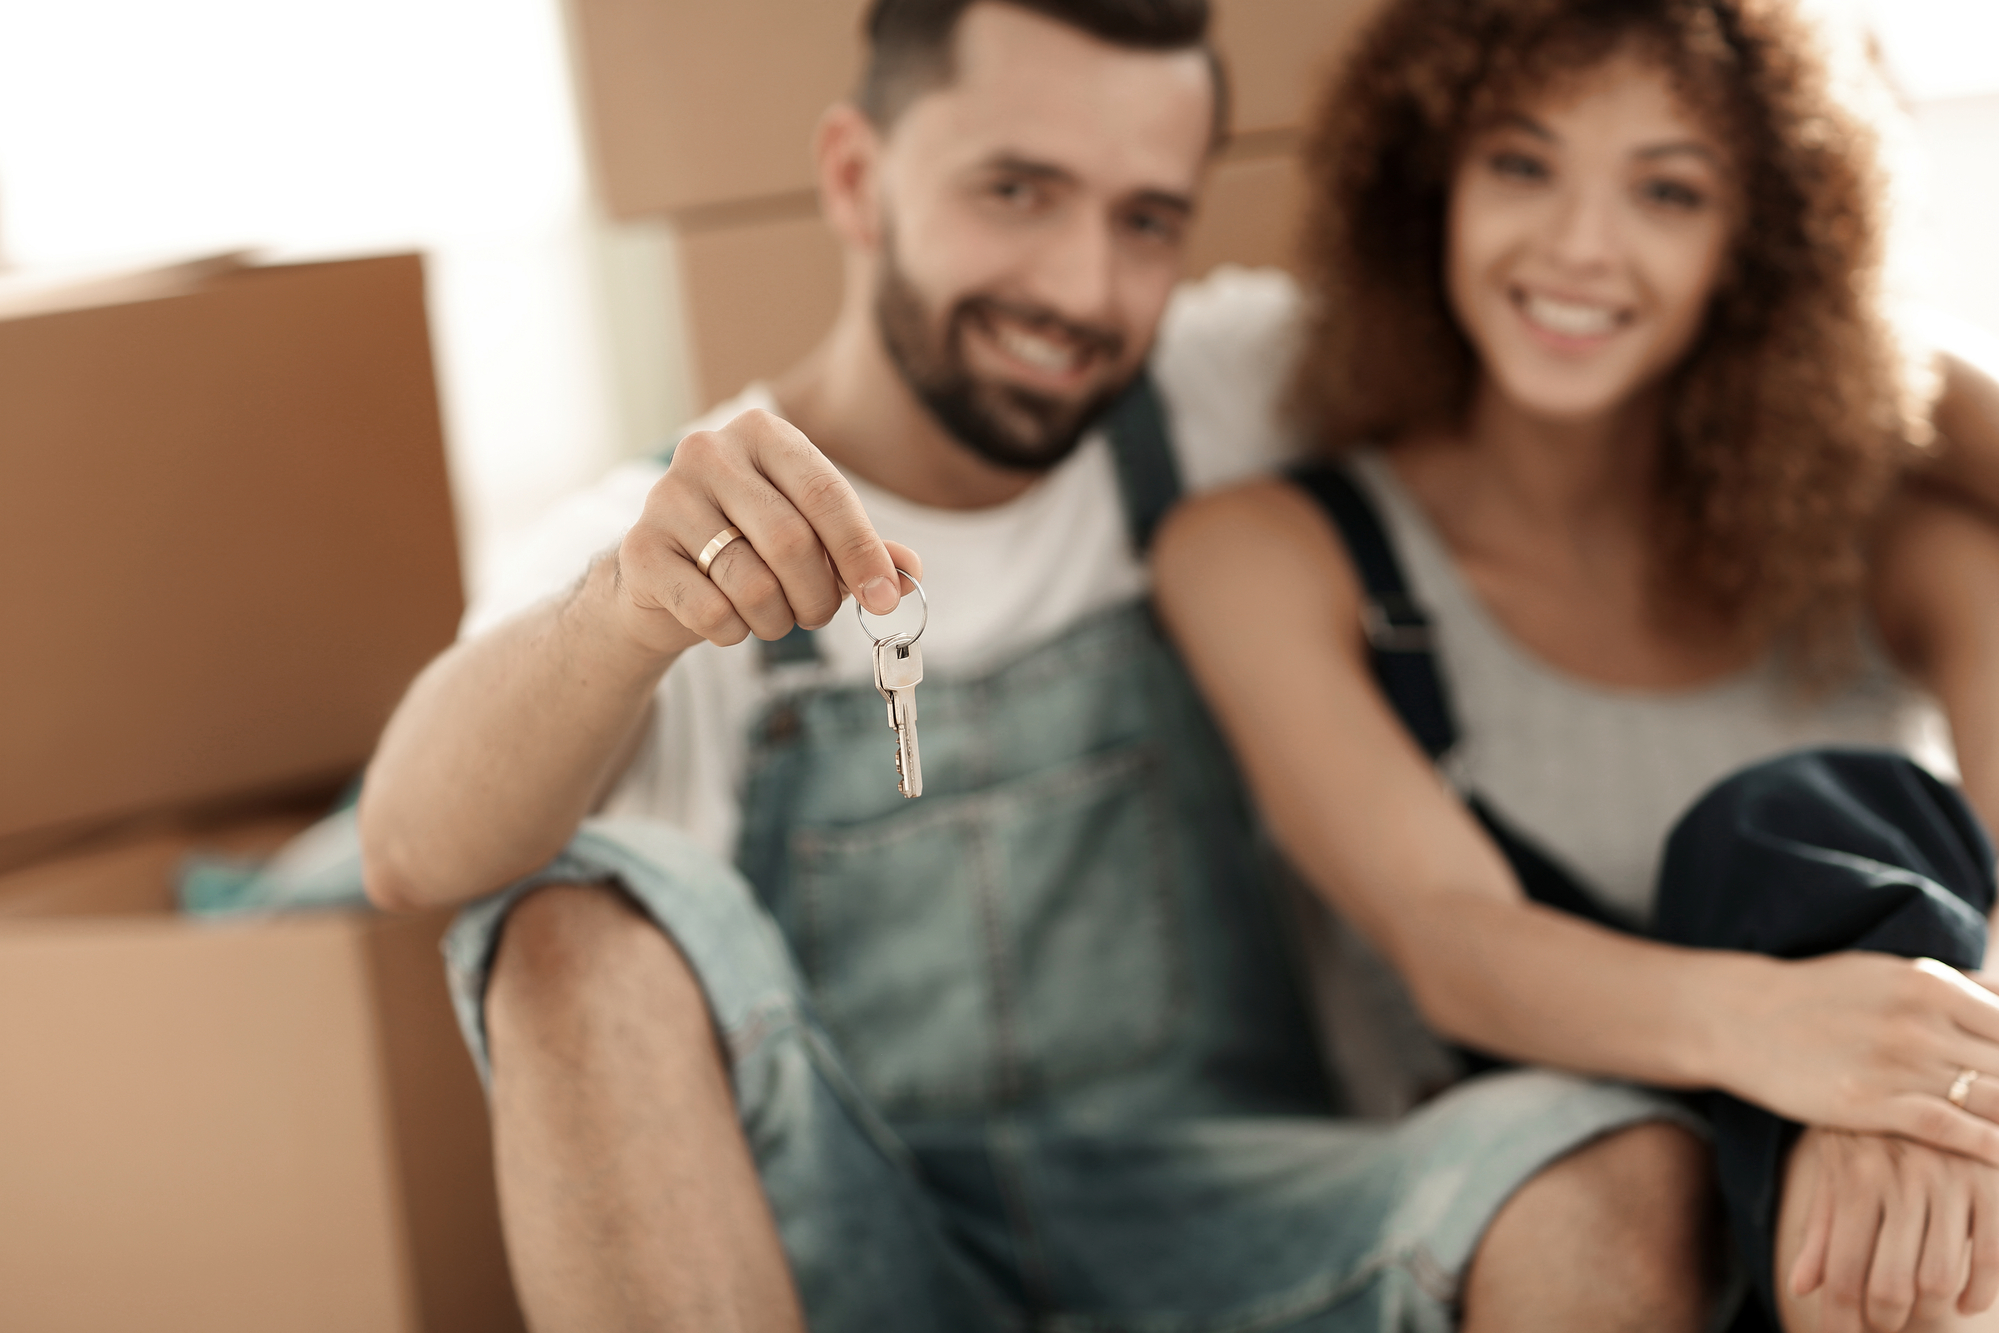 Smiling couple on the background of large cardboard boxes